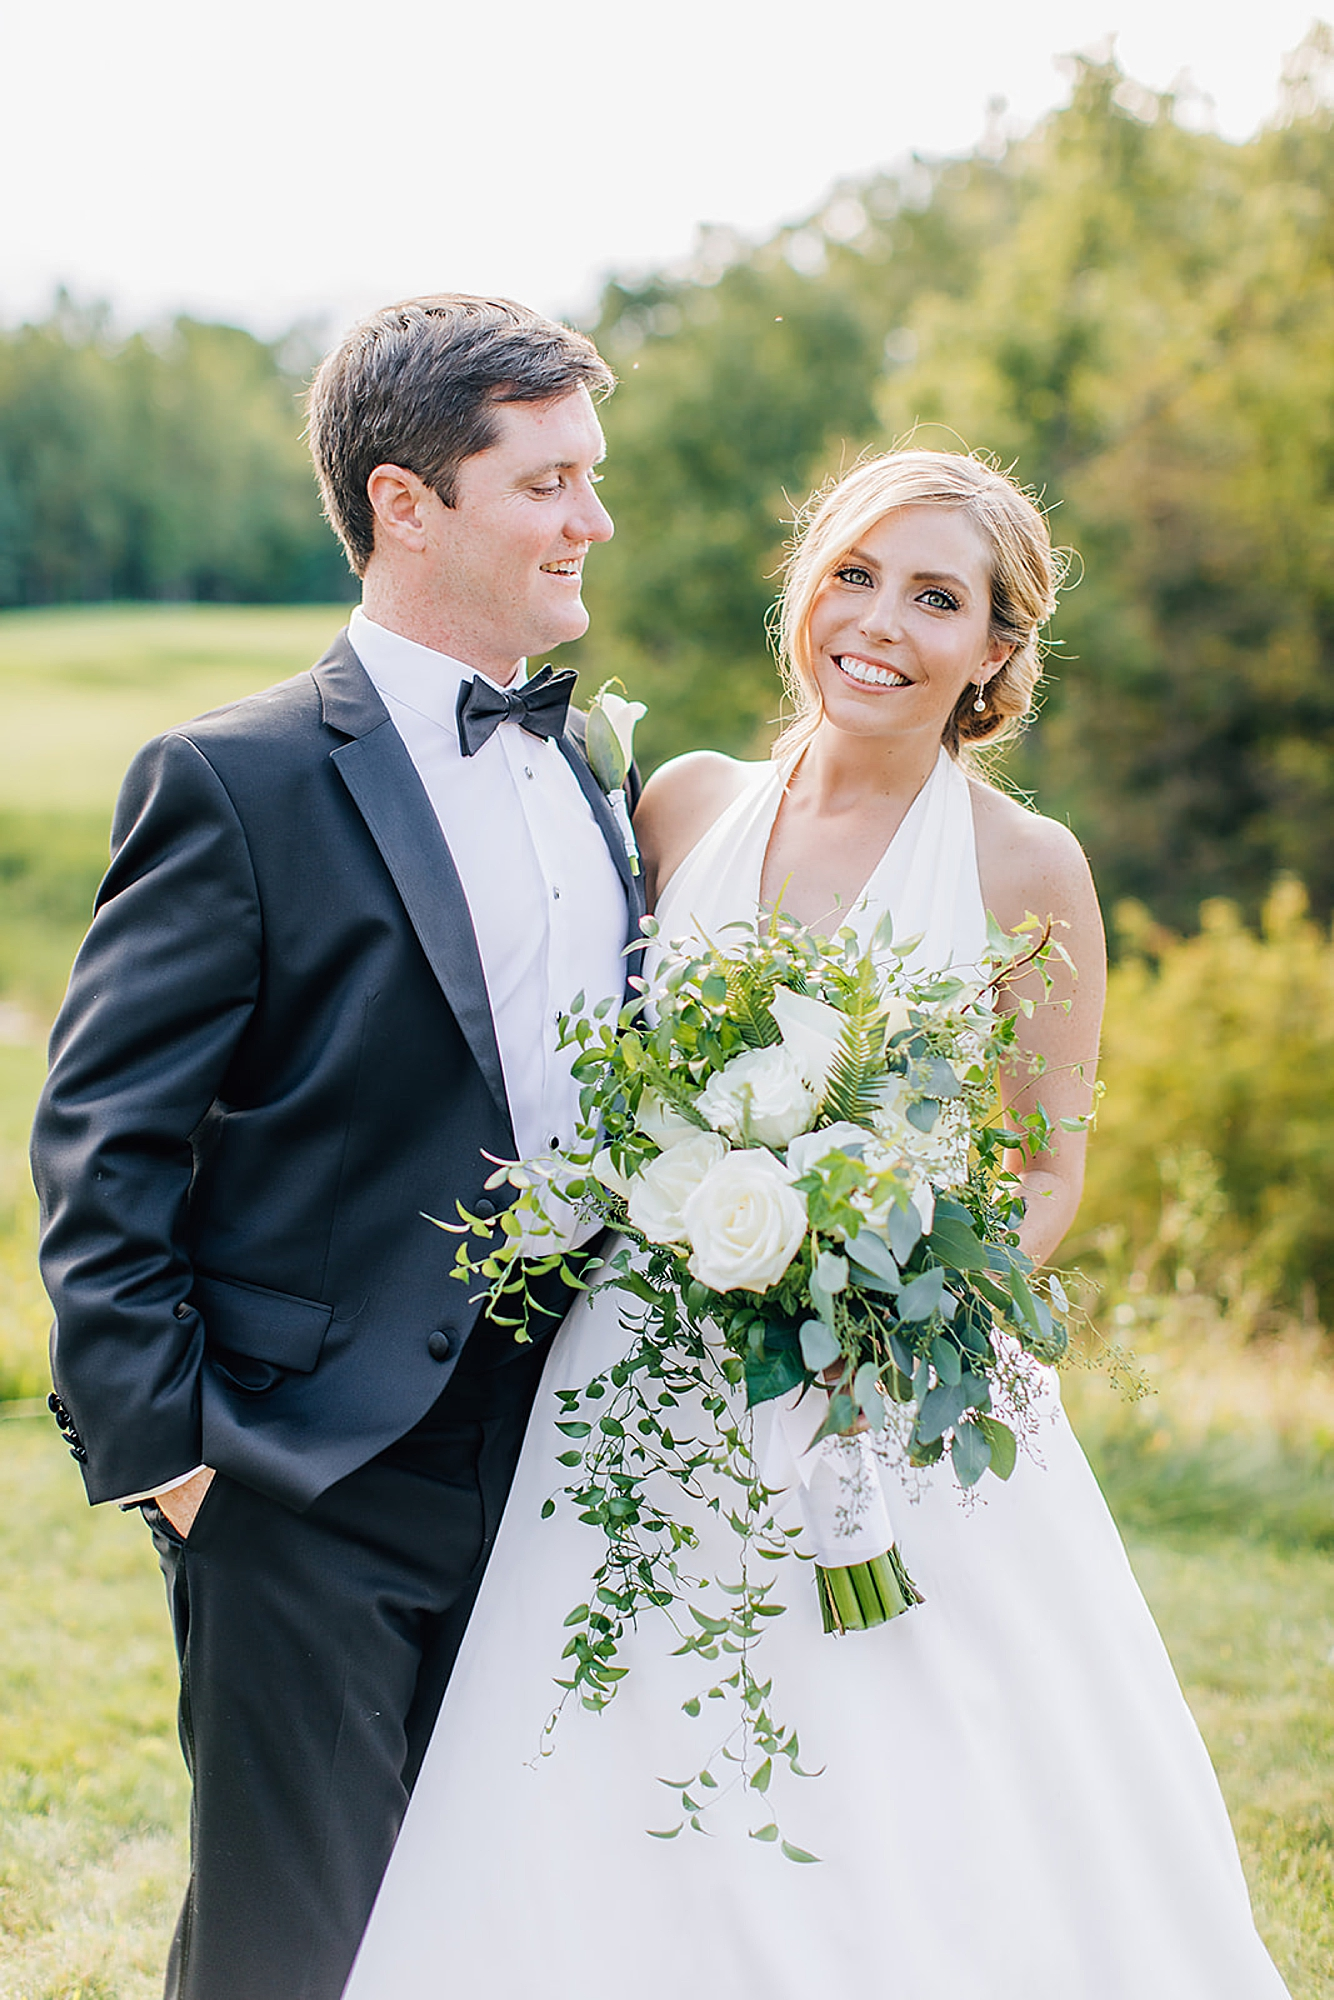 Scranton PA Wedding Photography by Magdalena Studios 0020